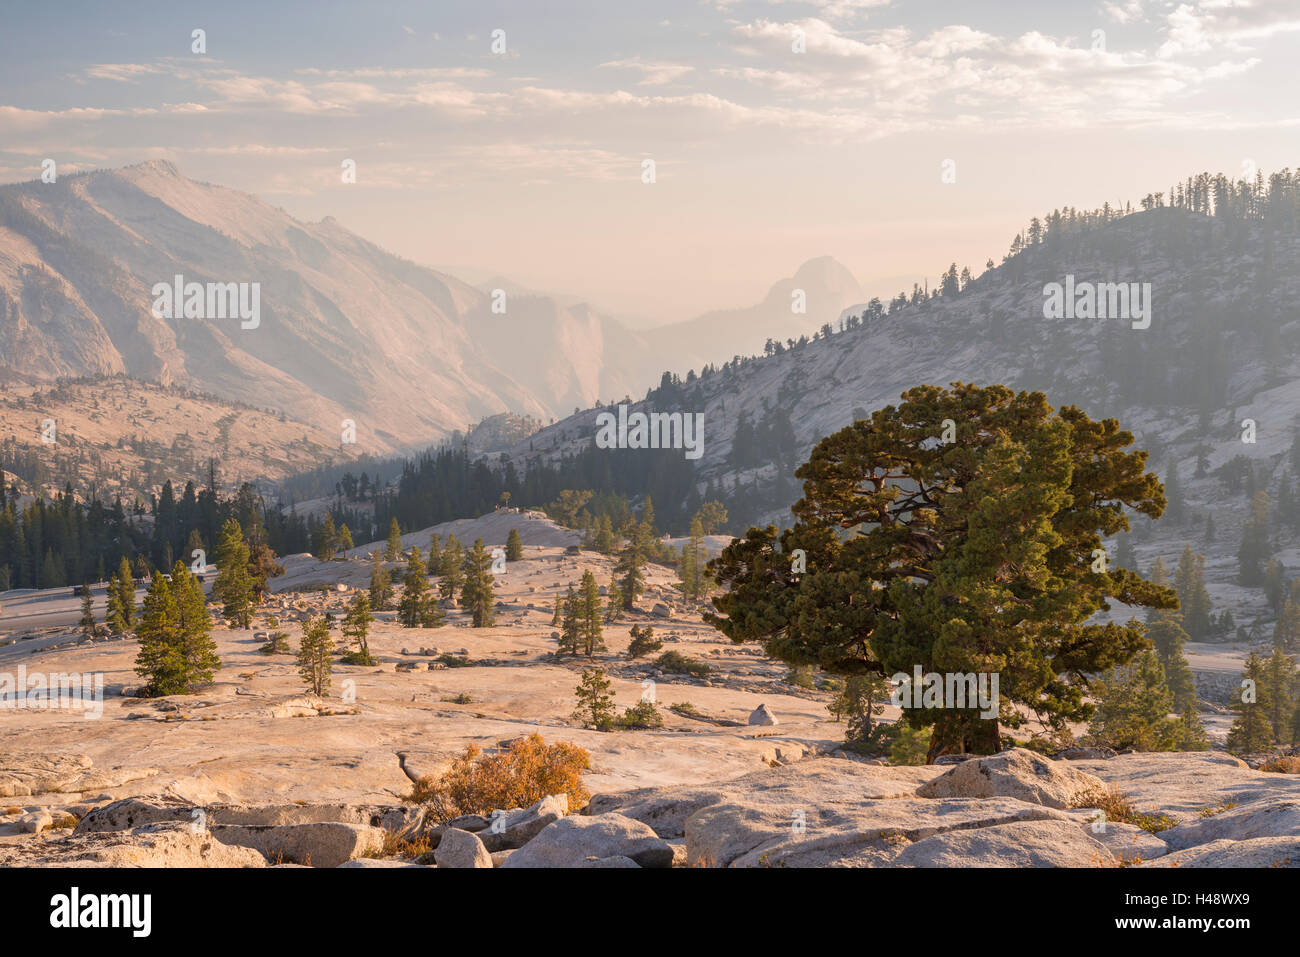 Half Dome and Clouds Rest mountains from Olmsted Point, Yosemite National Park, California, USA. Autumn (October) - Stock Image